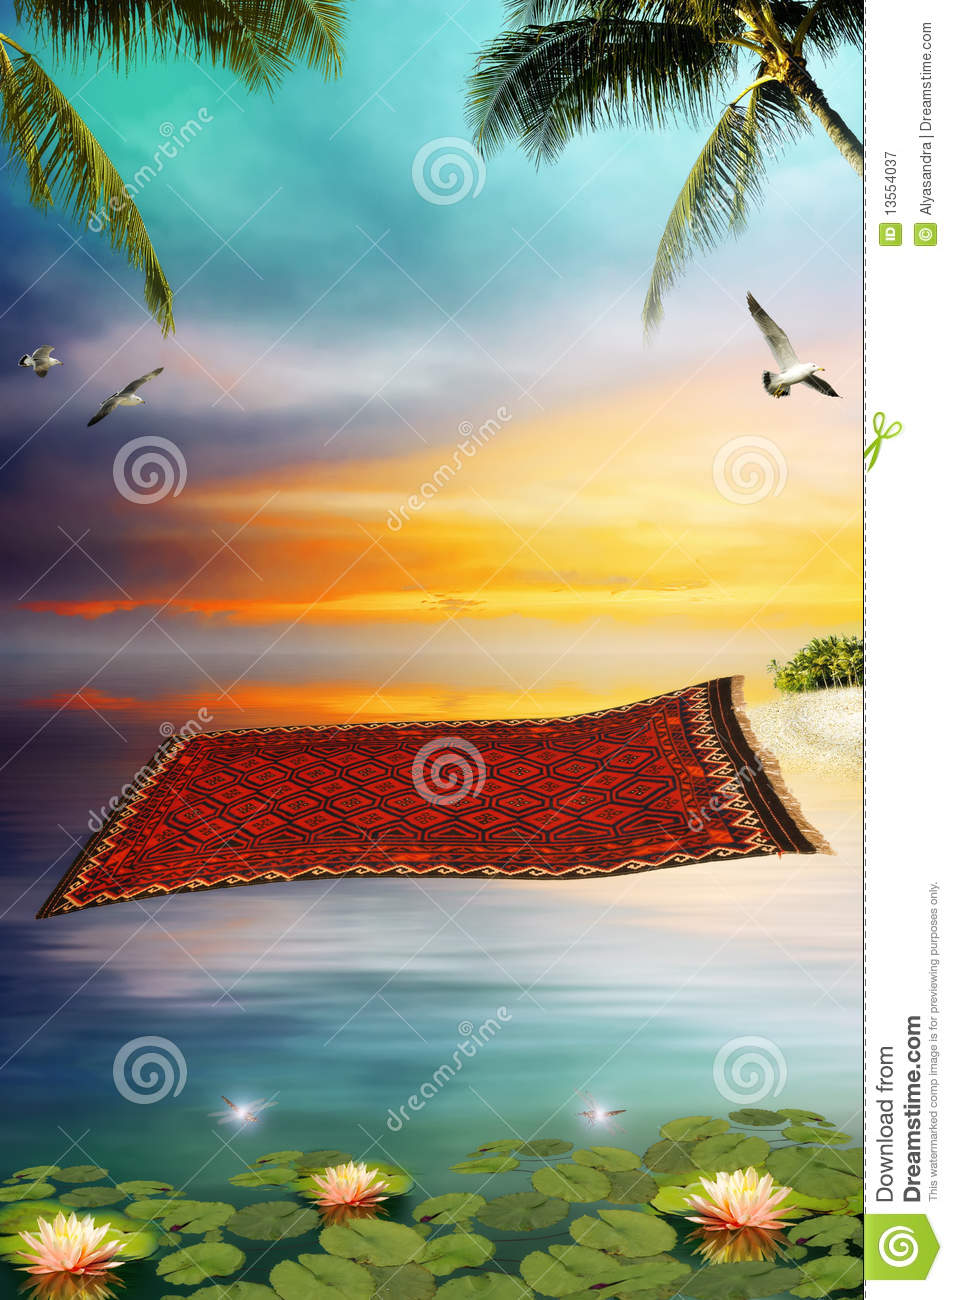 Flying Carpet Royalty Free Stock Photography Image 13554037